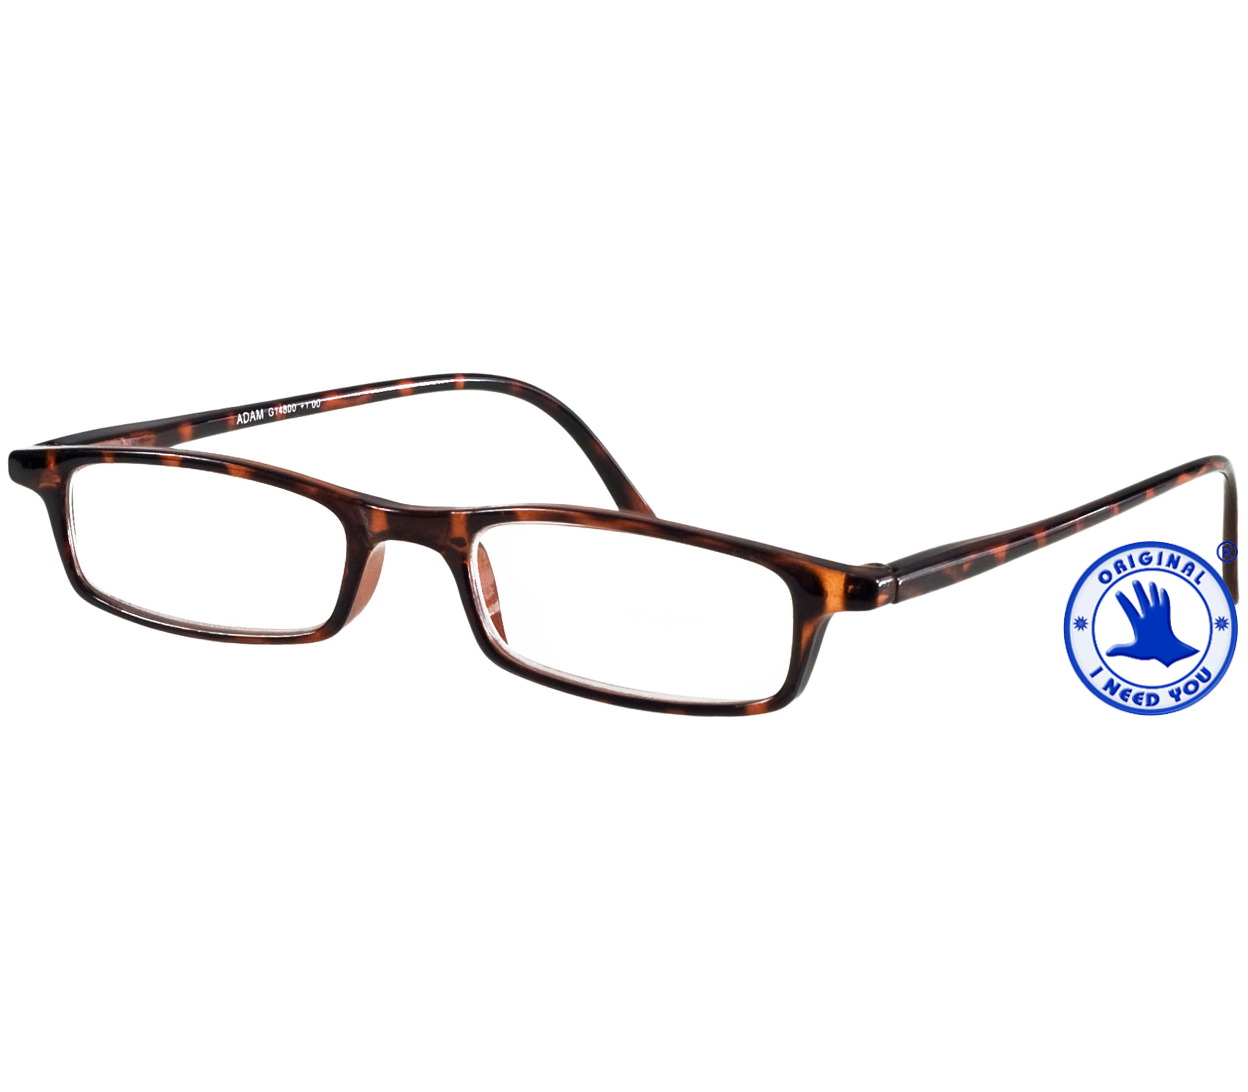 Main Image (Angle) - Adam (Tortoiseshell) Classic Reading Glasses